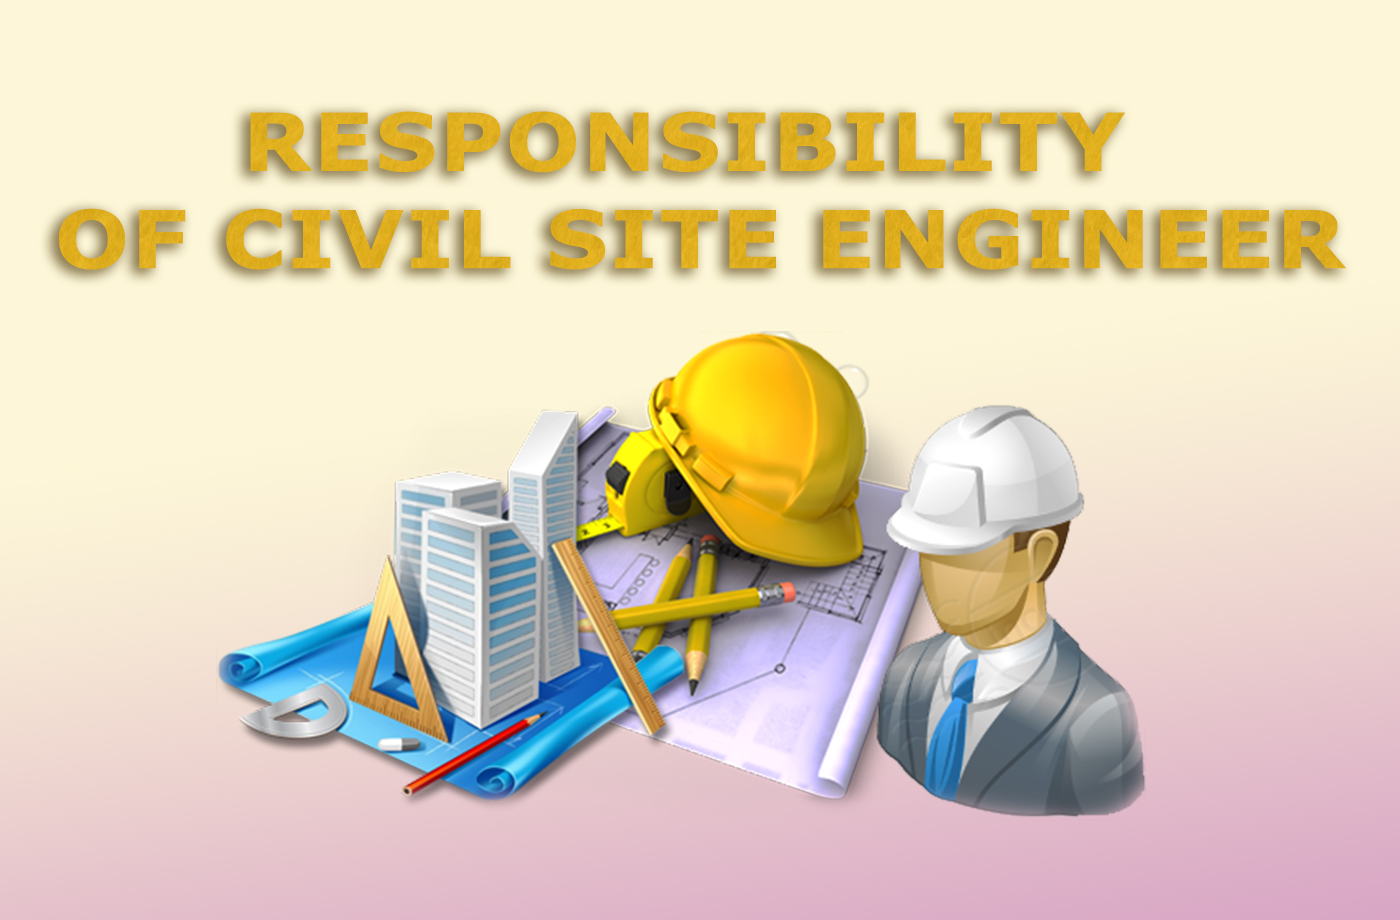 Responsibility of Civil Site Engineer